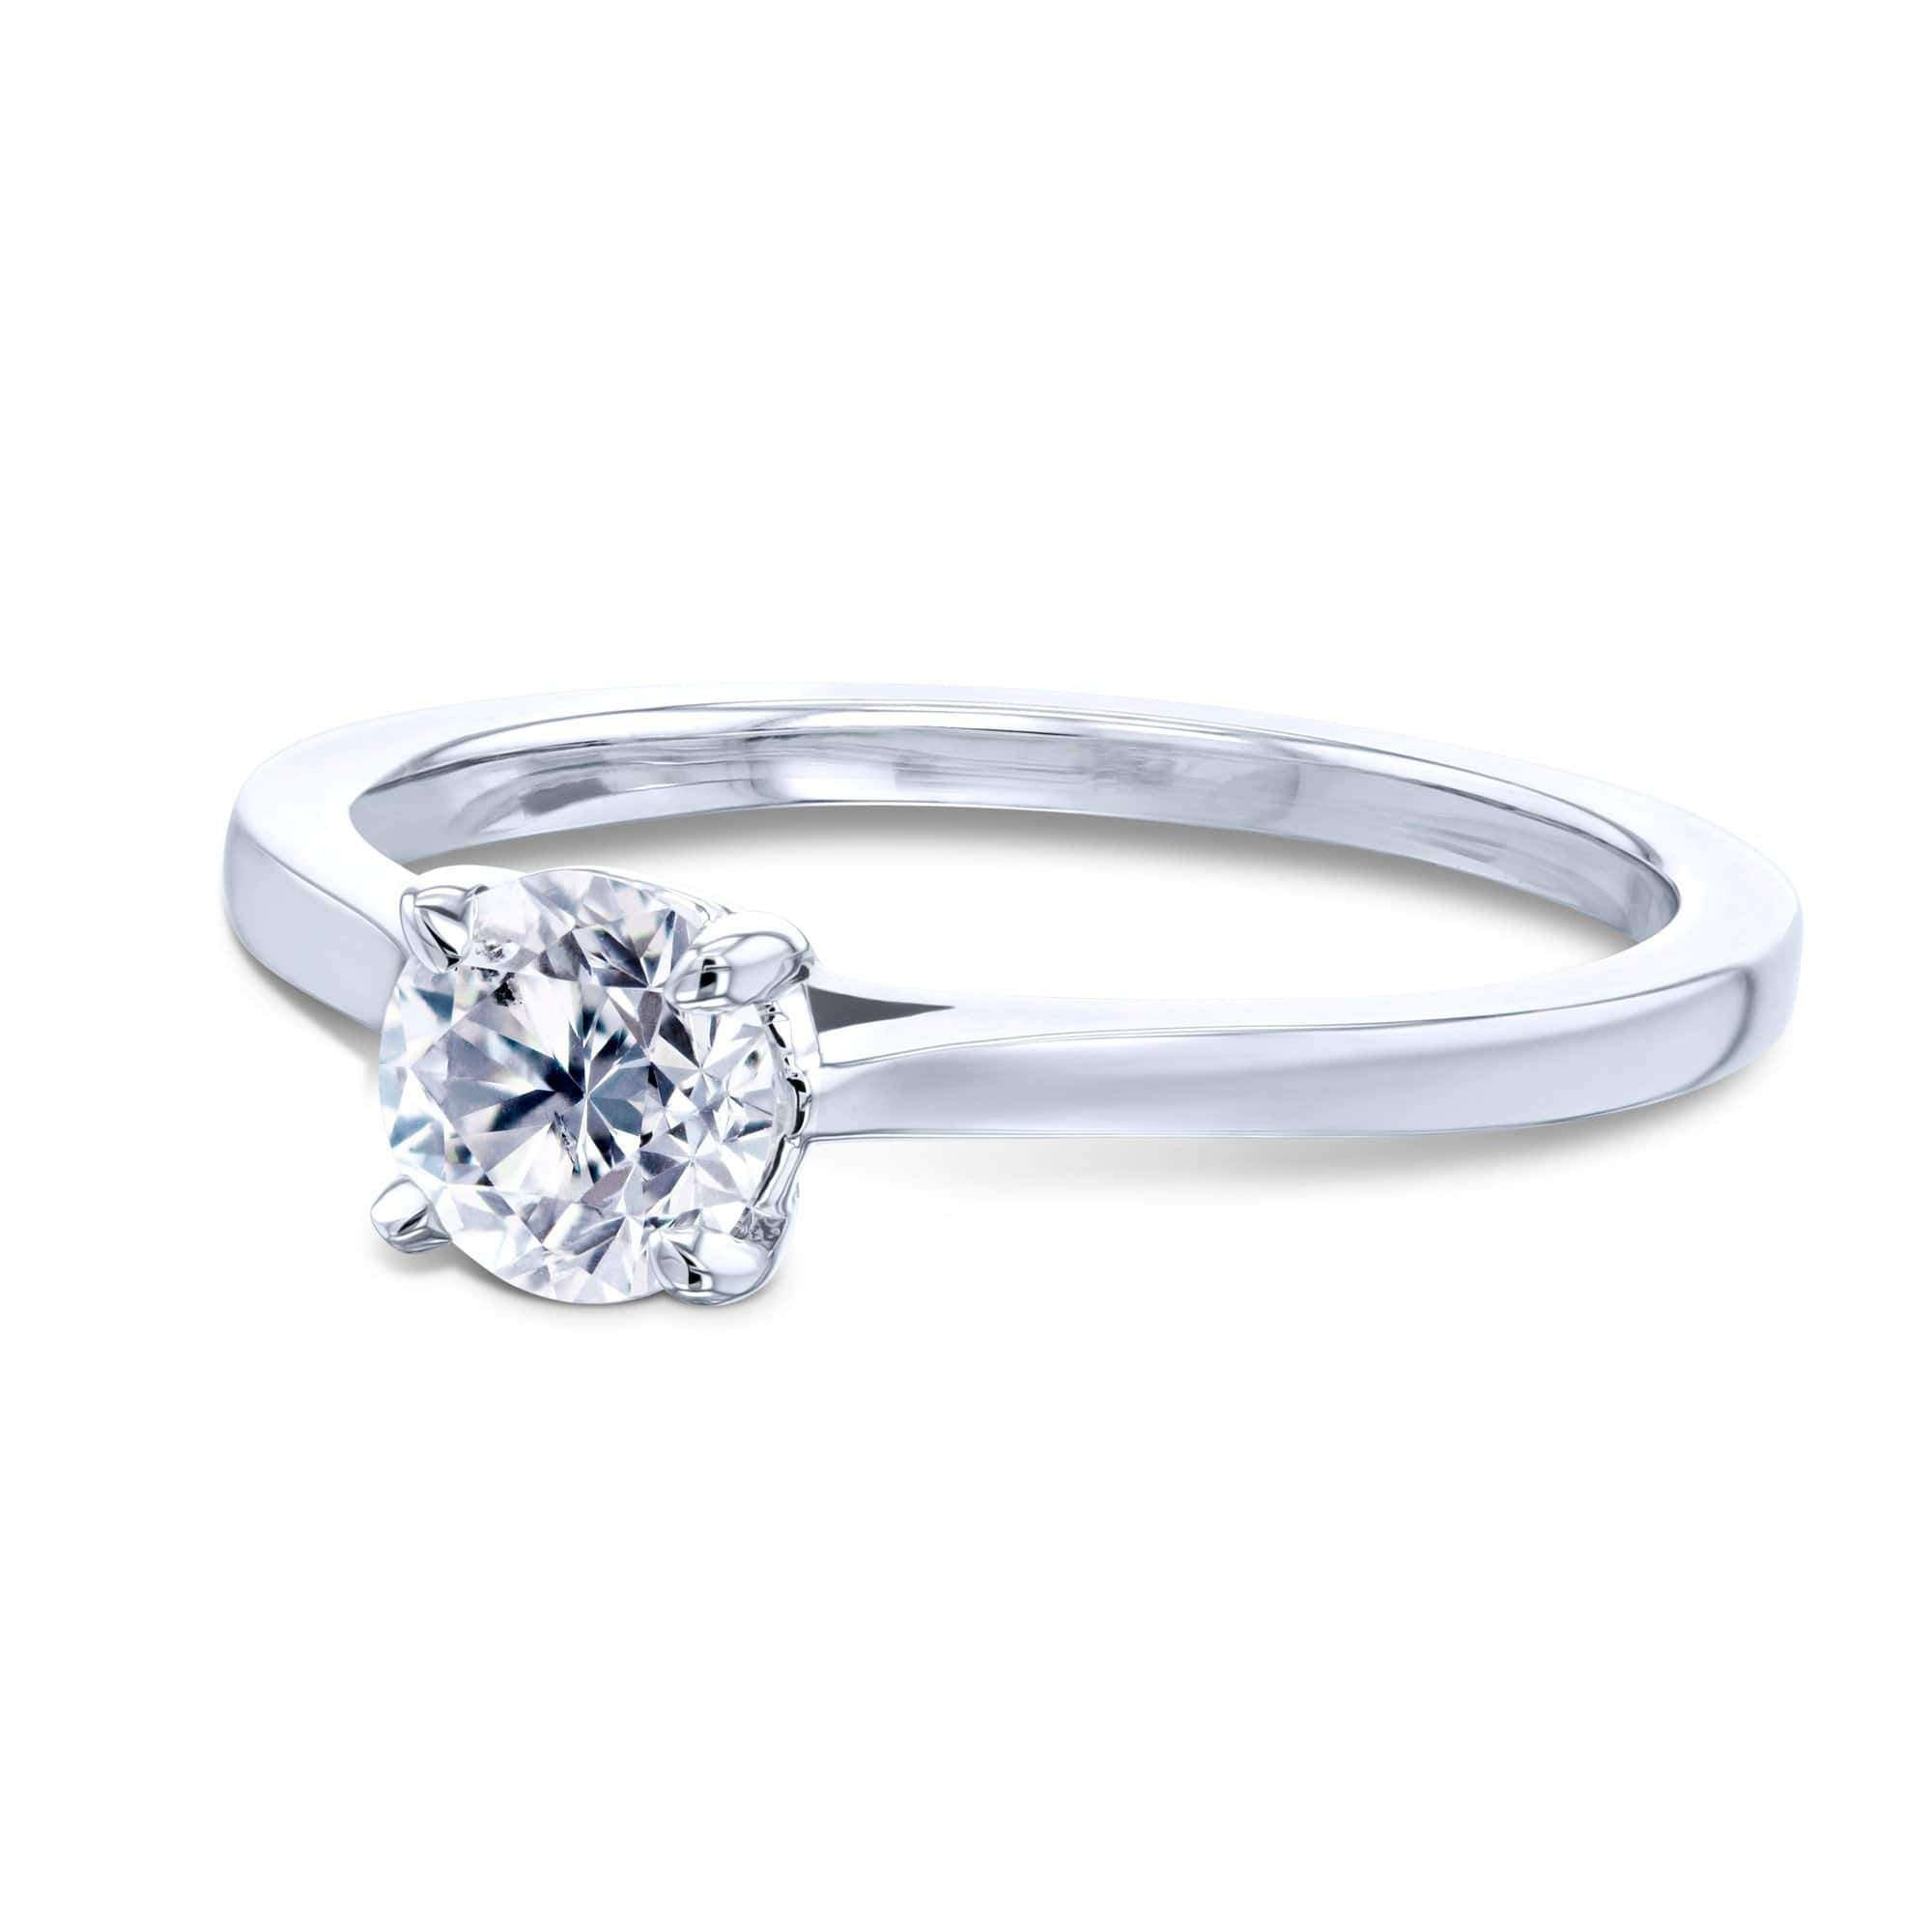 Top 1/2ct Round Diamond Solitaire Ring - white-gold 8.5